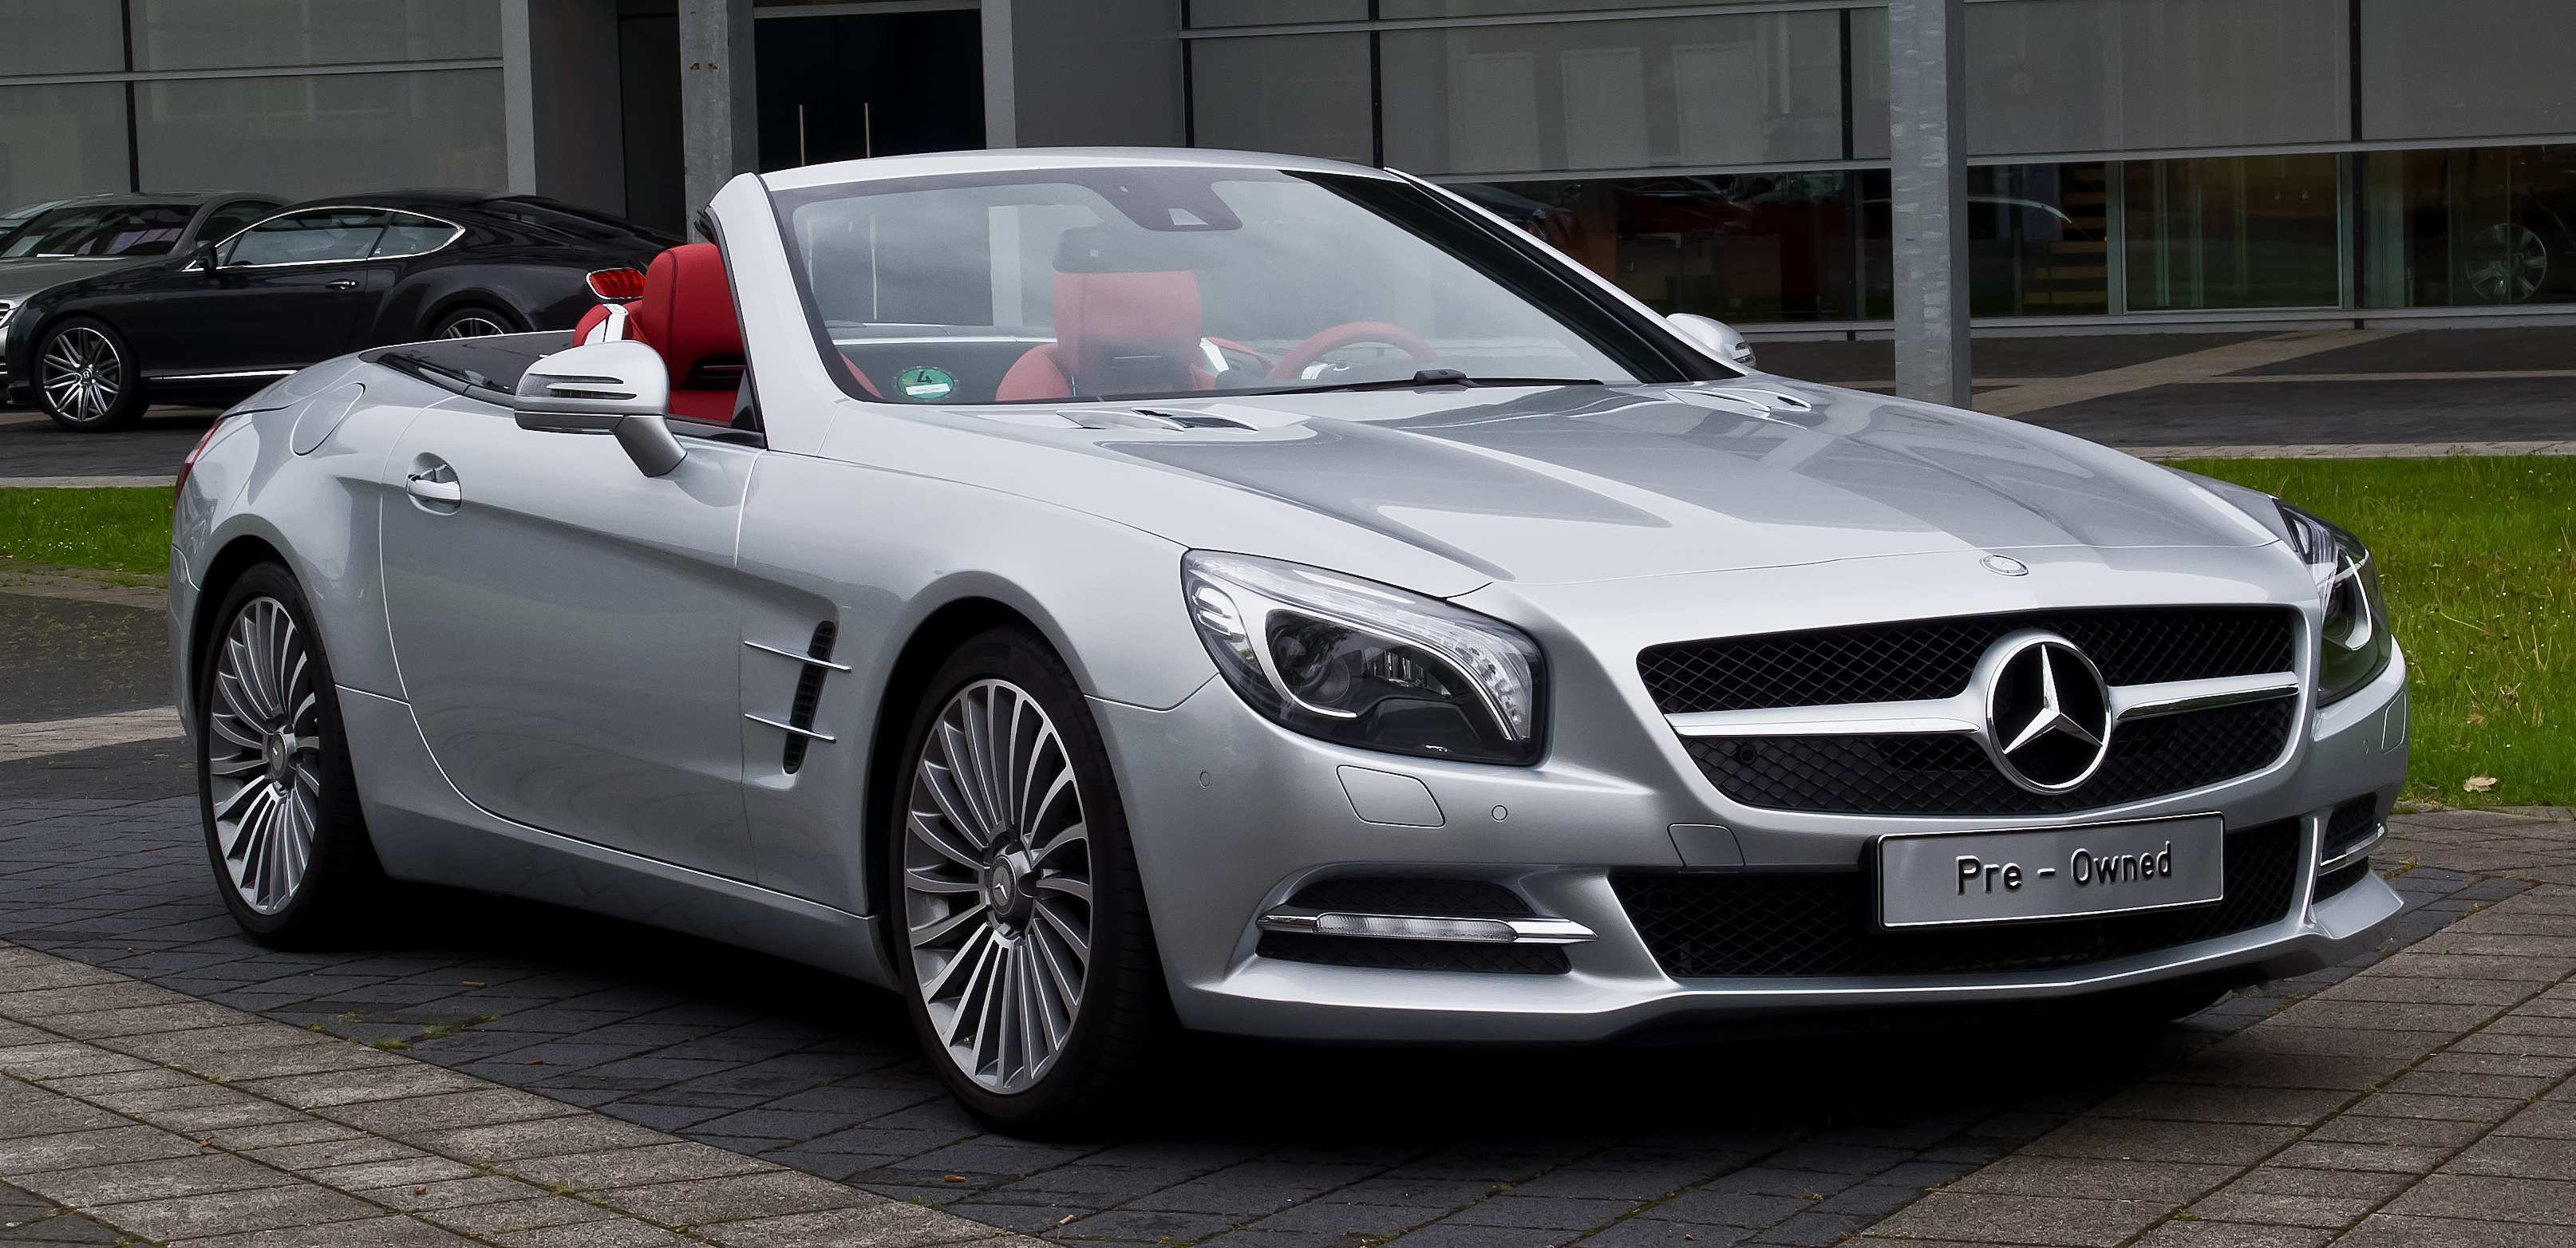 62 Concept of Best Sl550 Mercedes 2019 Redesign Prices by Best Sl550 Mercedes 2019 Redesign